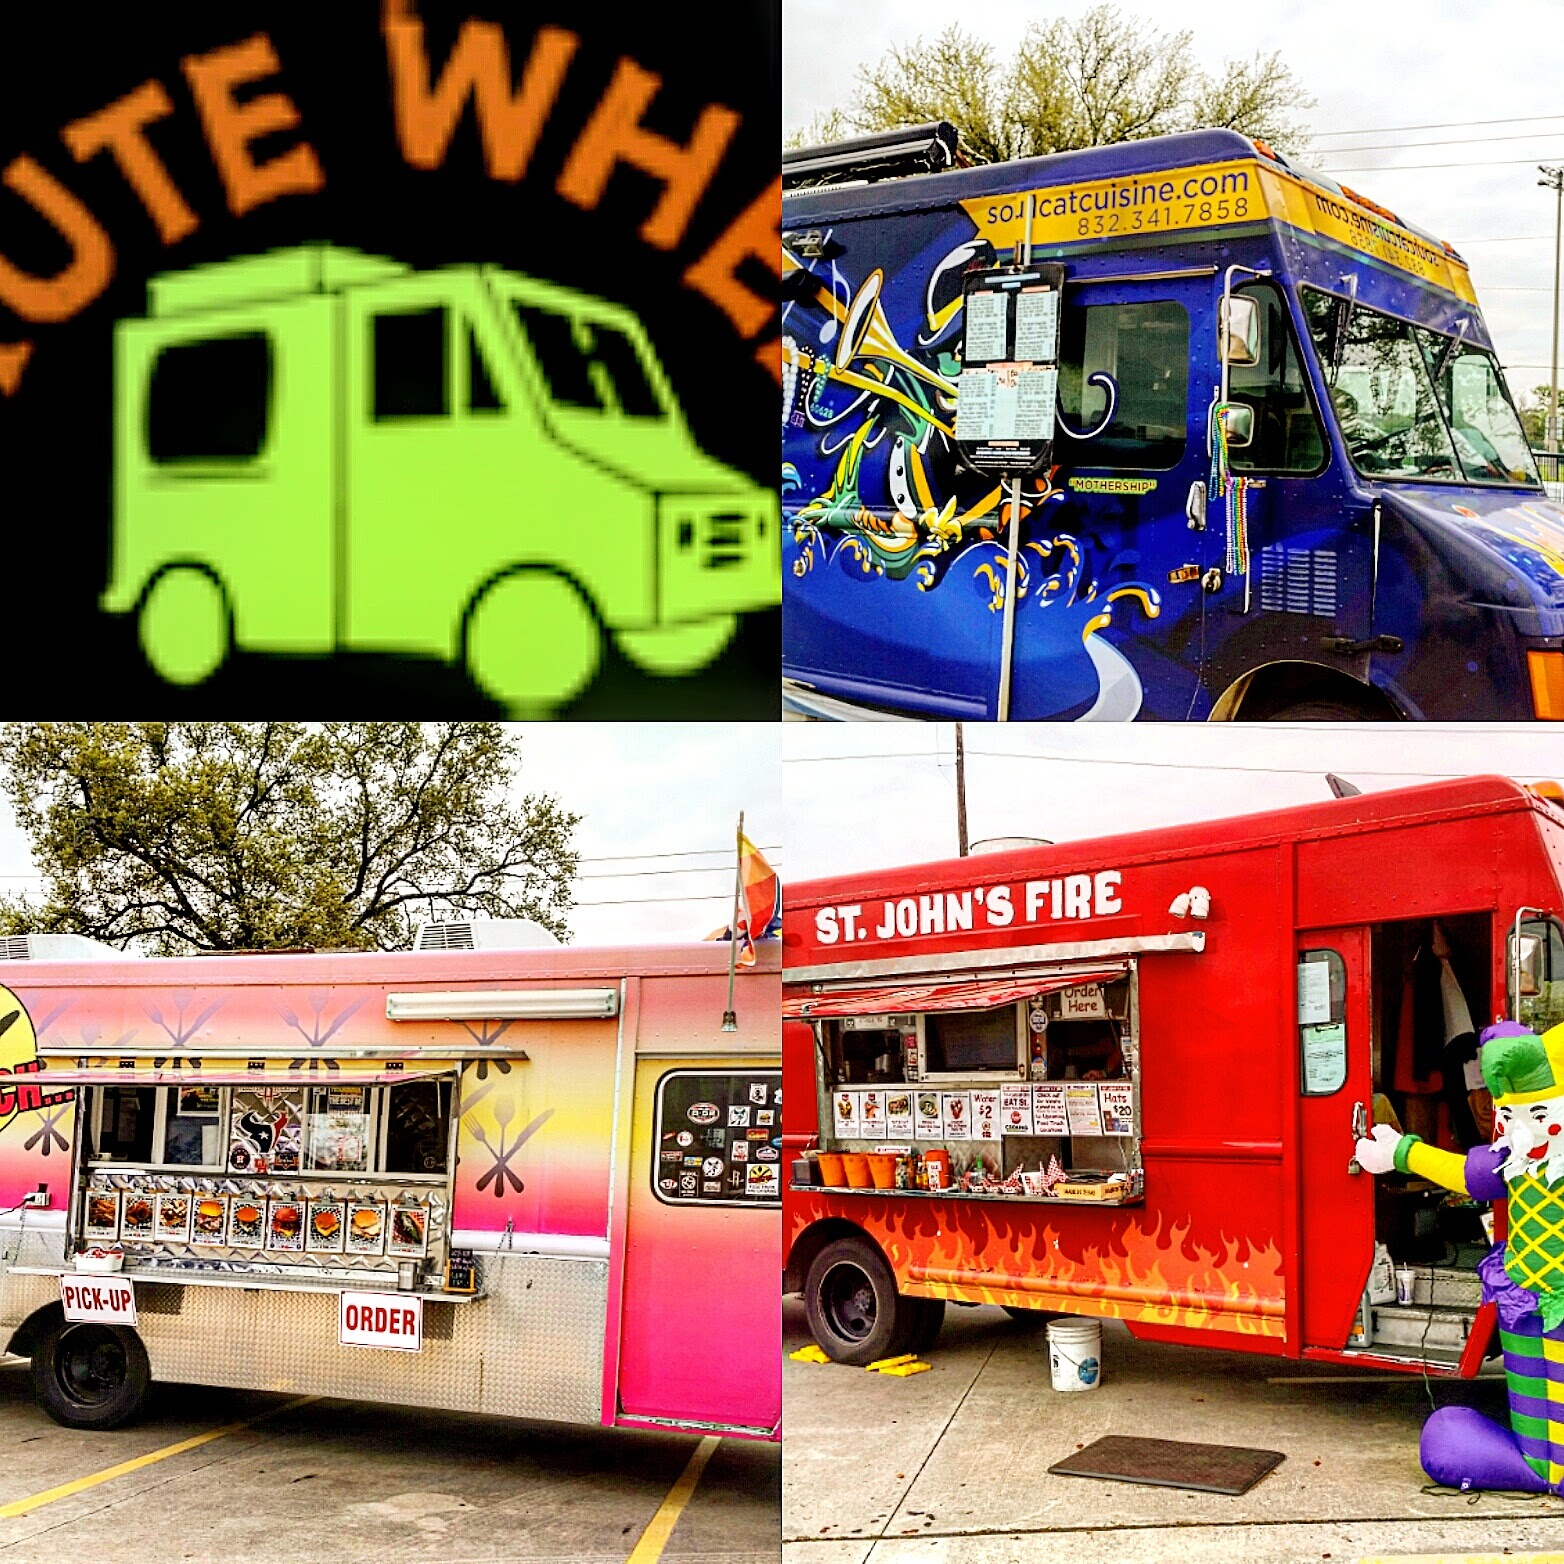 As expected many of the usual suspects fave food trucks of mine were present and accounted for